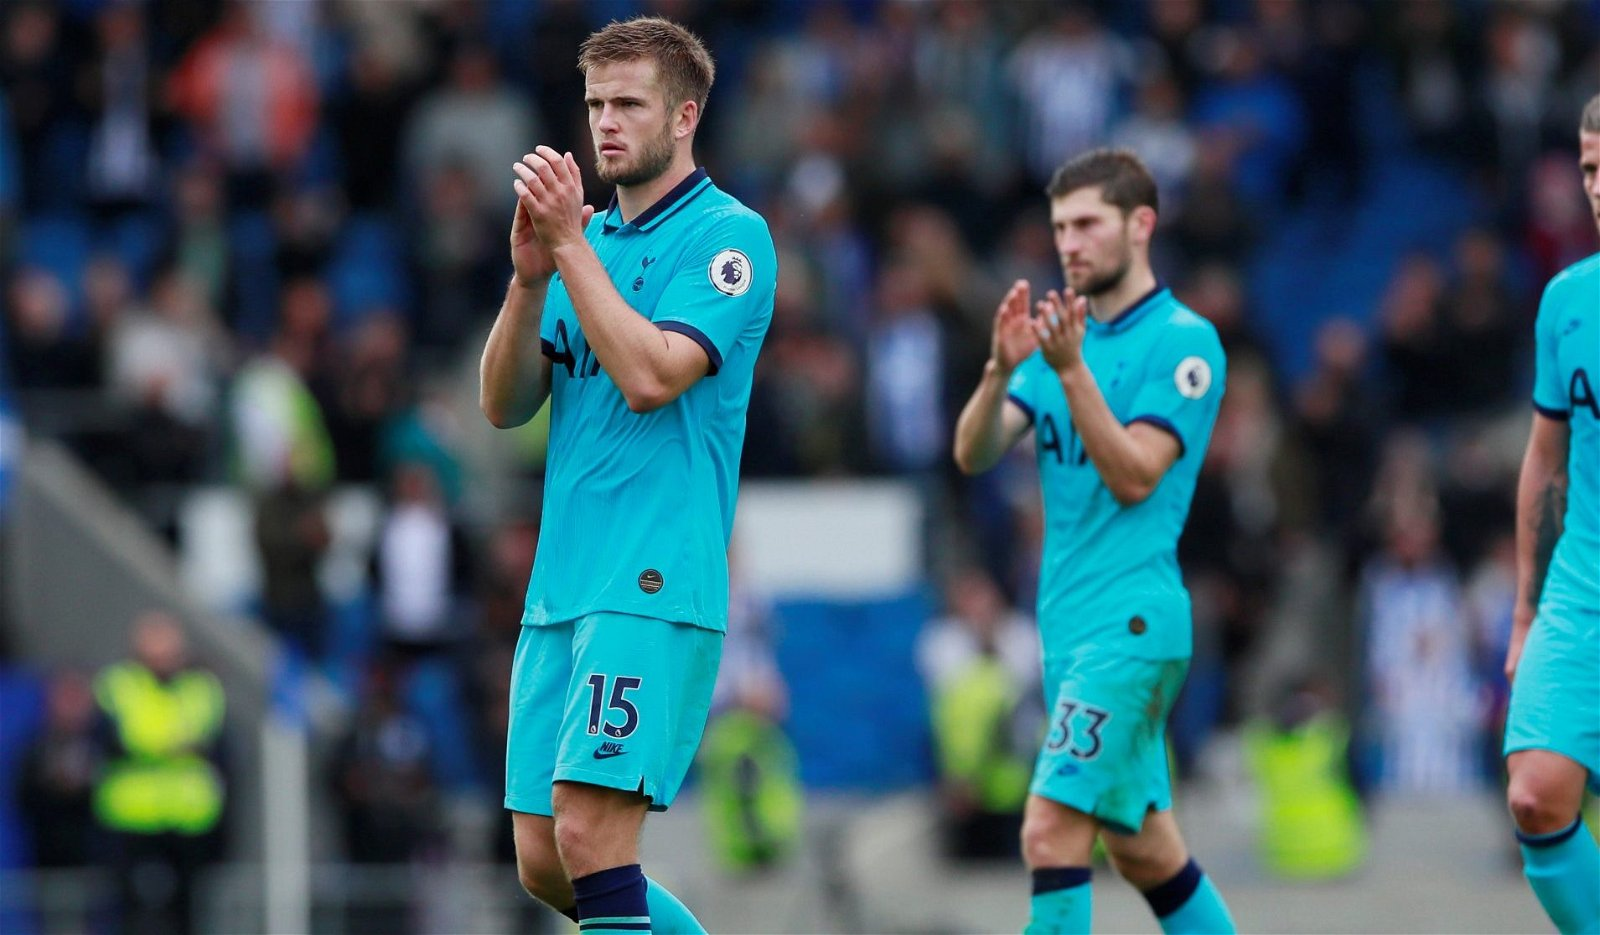 Tottenham midfielder Eric Dier applauds the fans after Brighton defeat e1570802620610 - Three Spurs men set to benefit most from Mourinho appointment - opinion